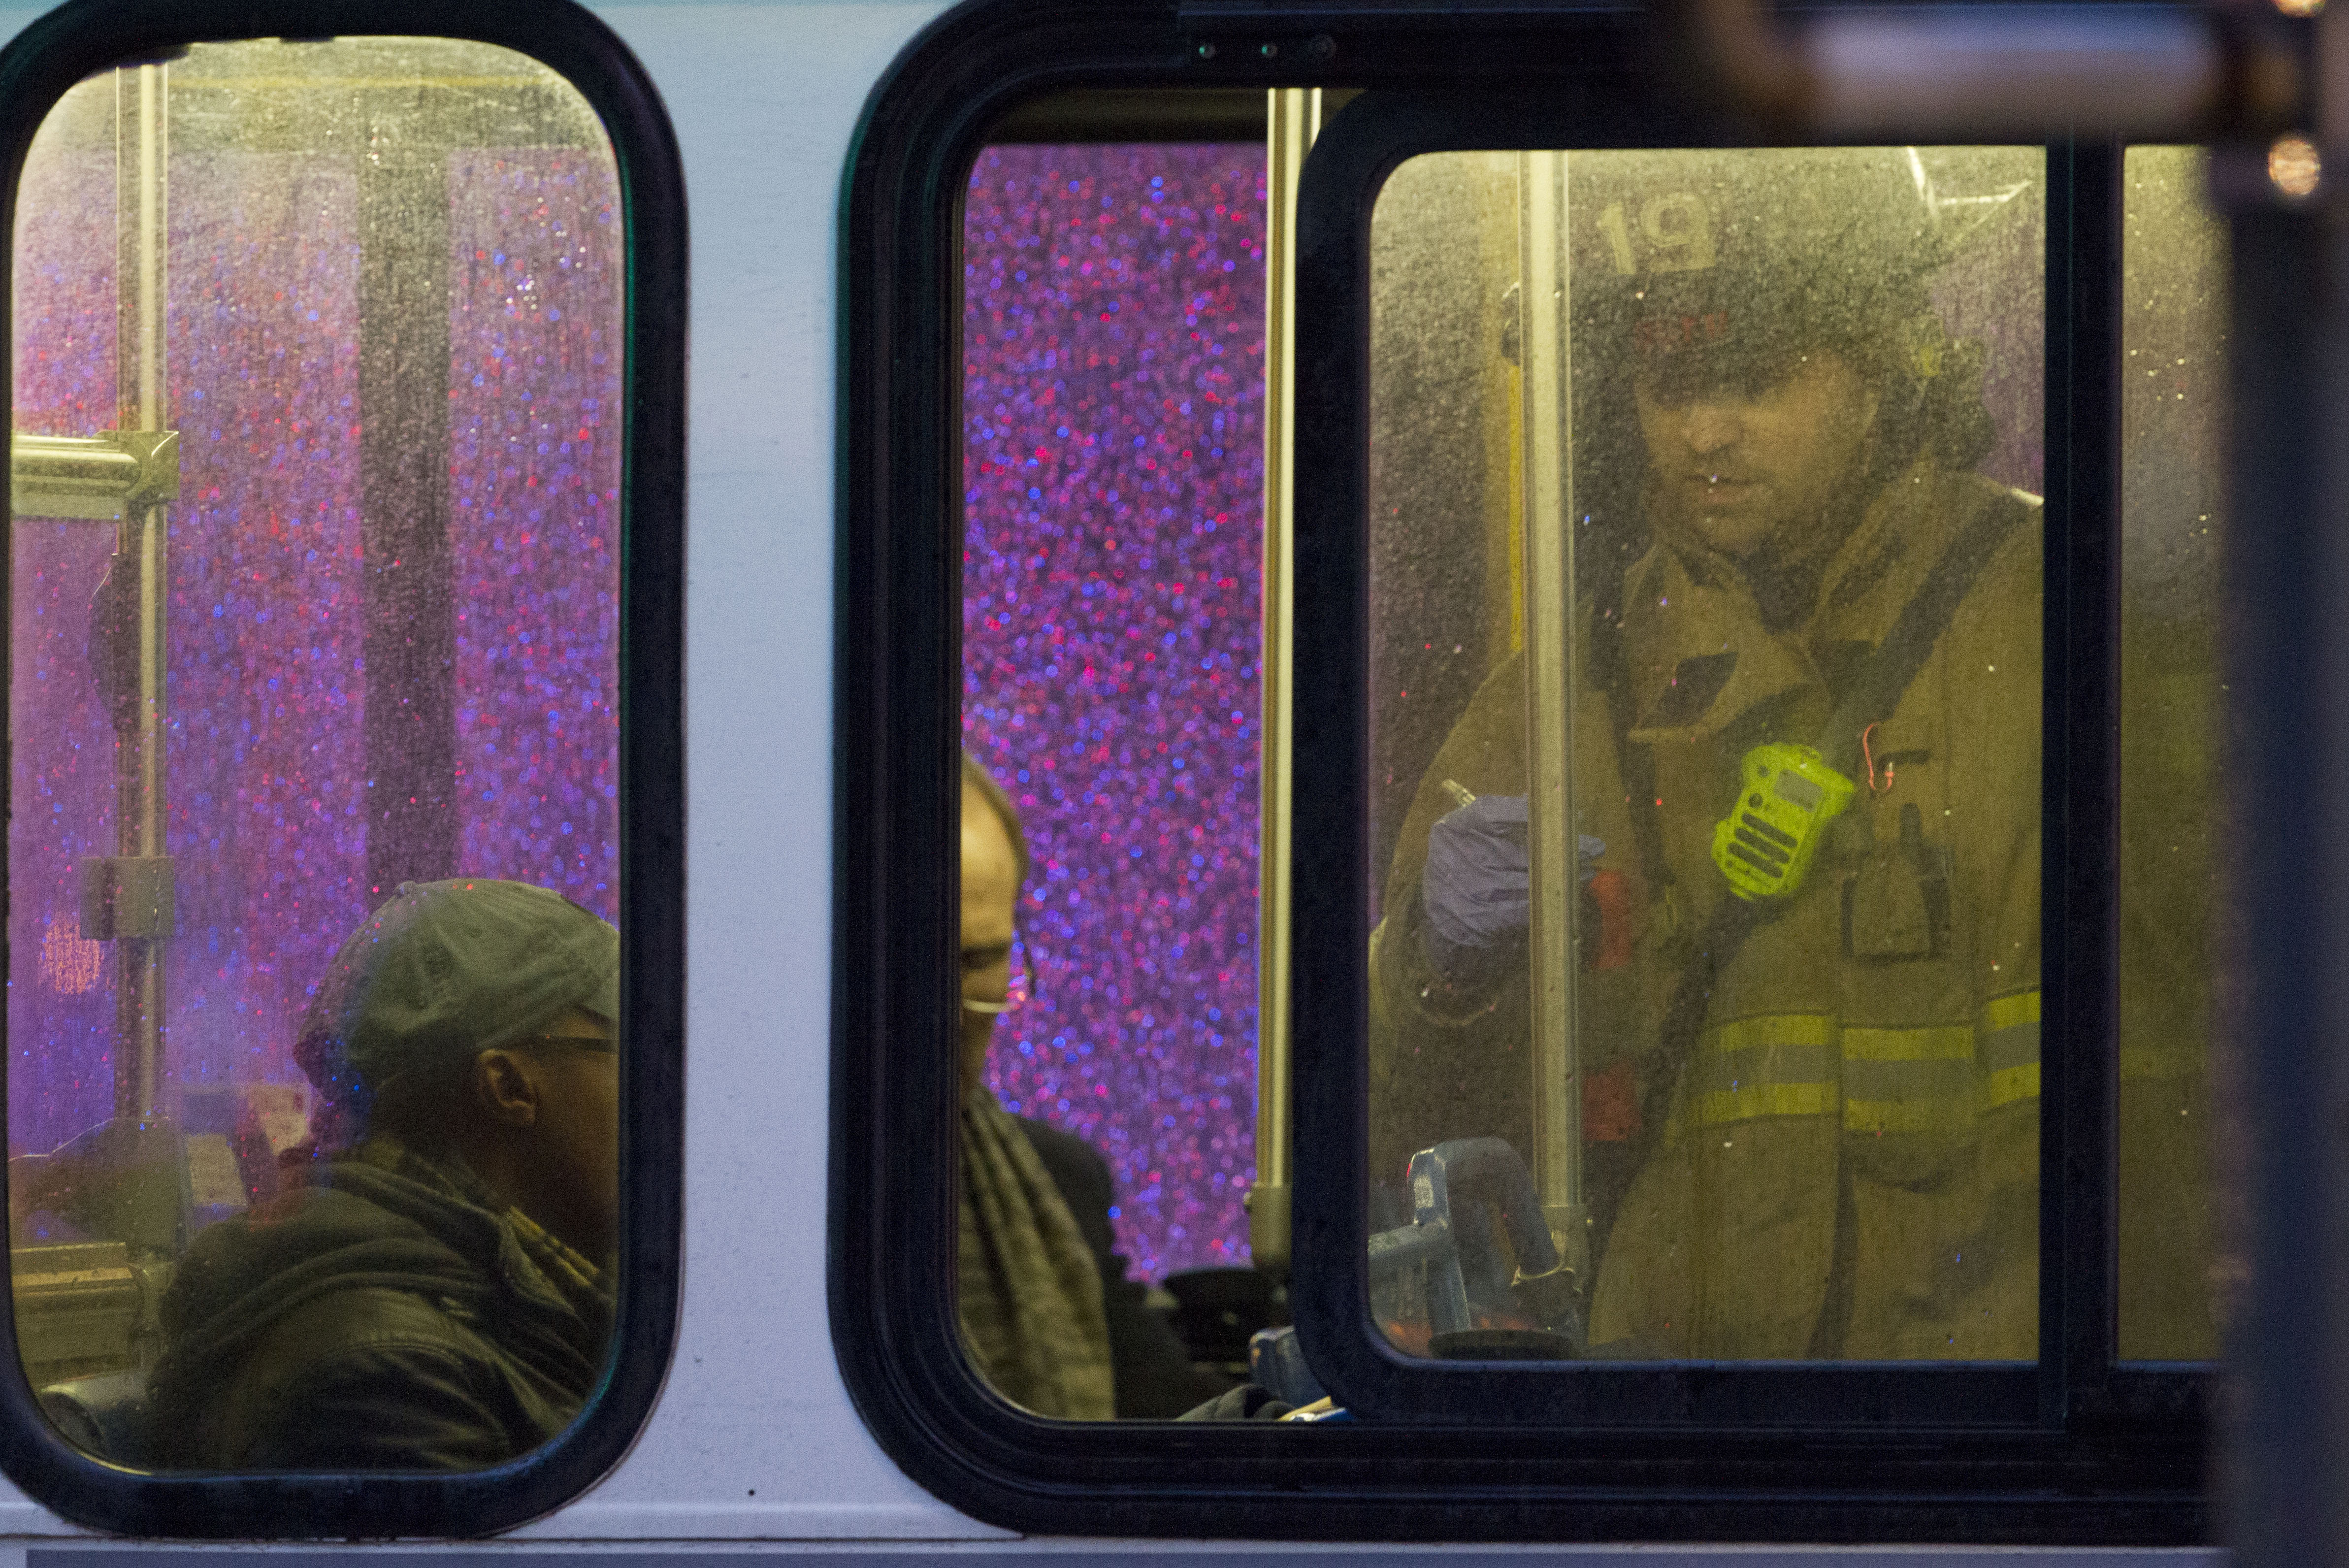 One year after L'Enfant Plaza incident, Metro riders still wary